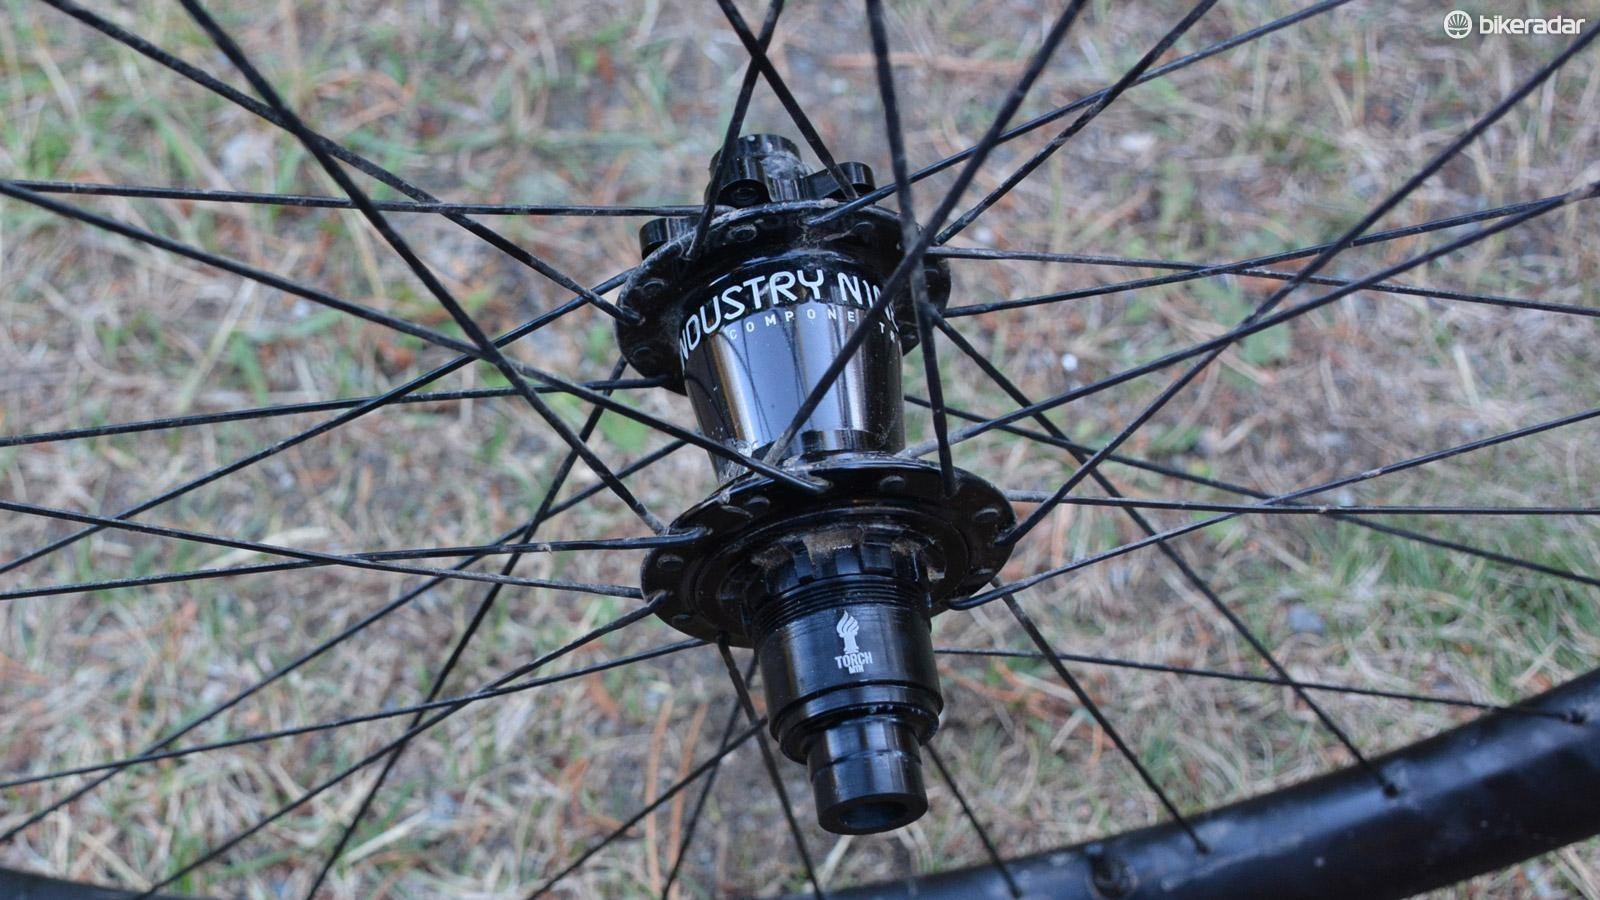 Industry Nine's Torch hubs were the heart anchoring this wheelset